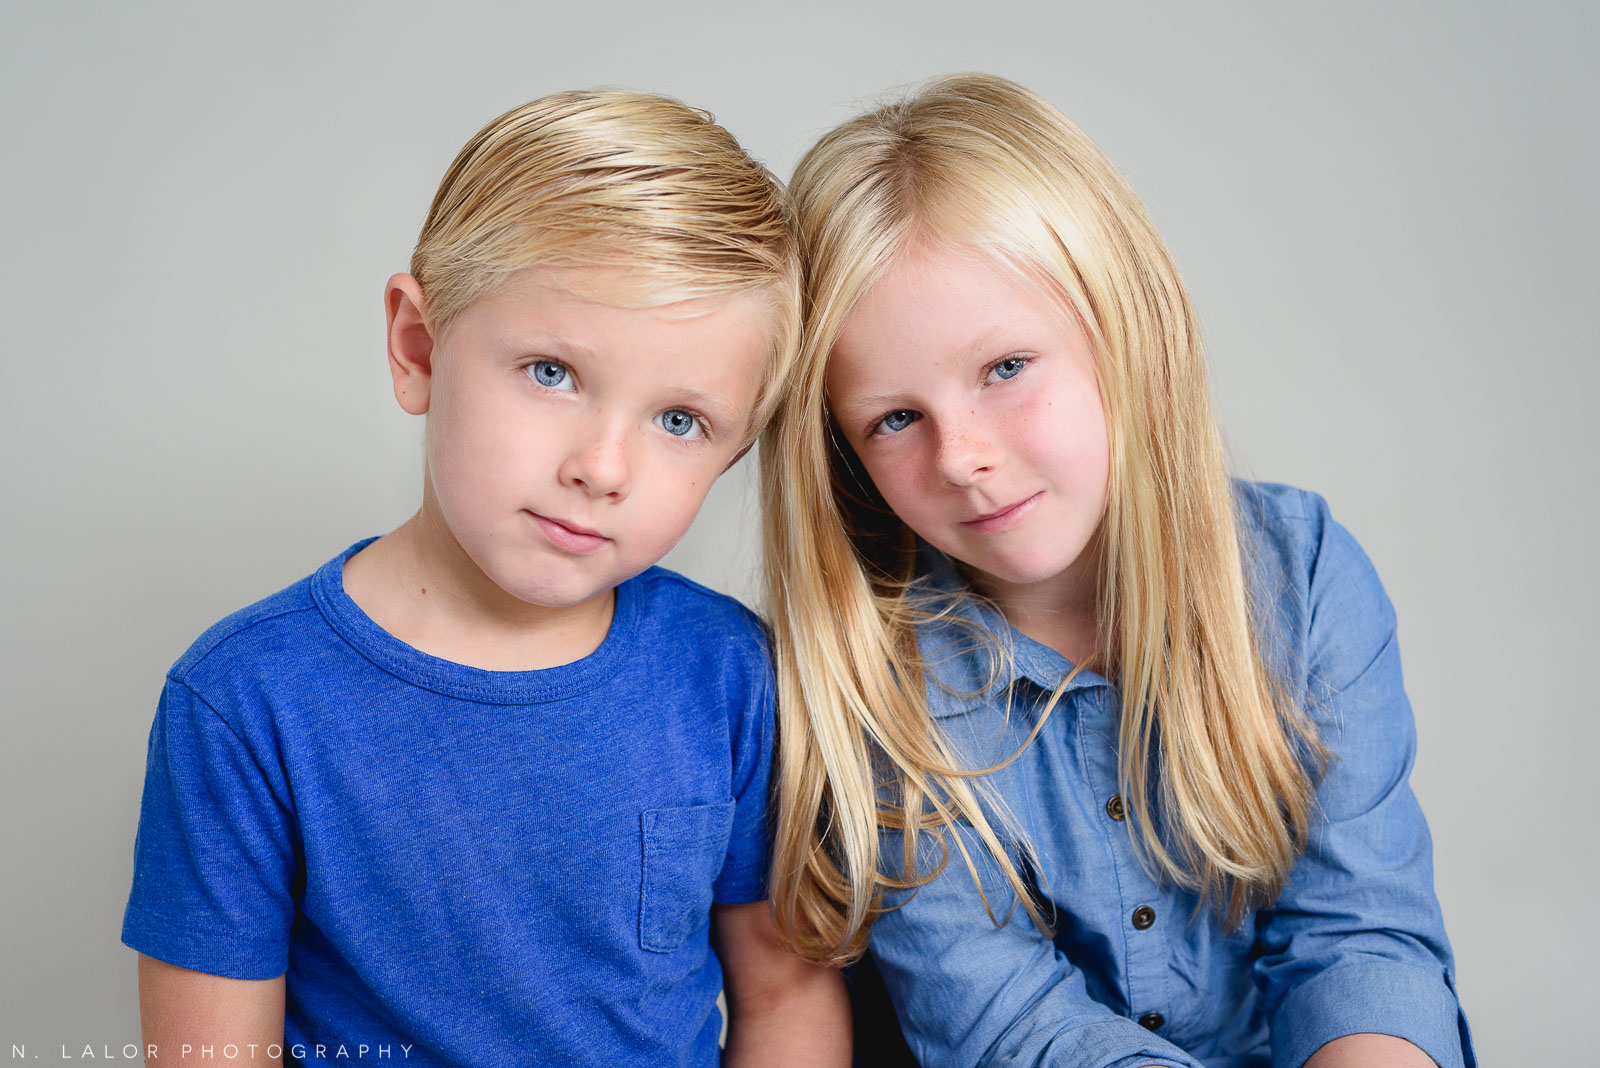 Siblings, being serious. Studio photoshoot with N. Lalor Photography in Greenwich, Connecticut.